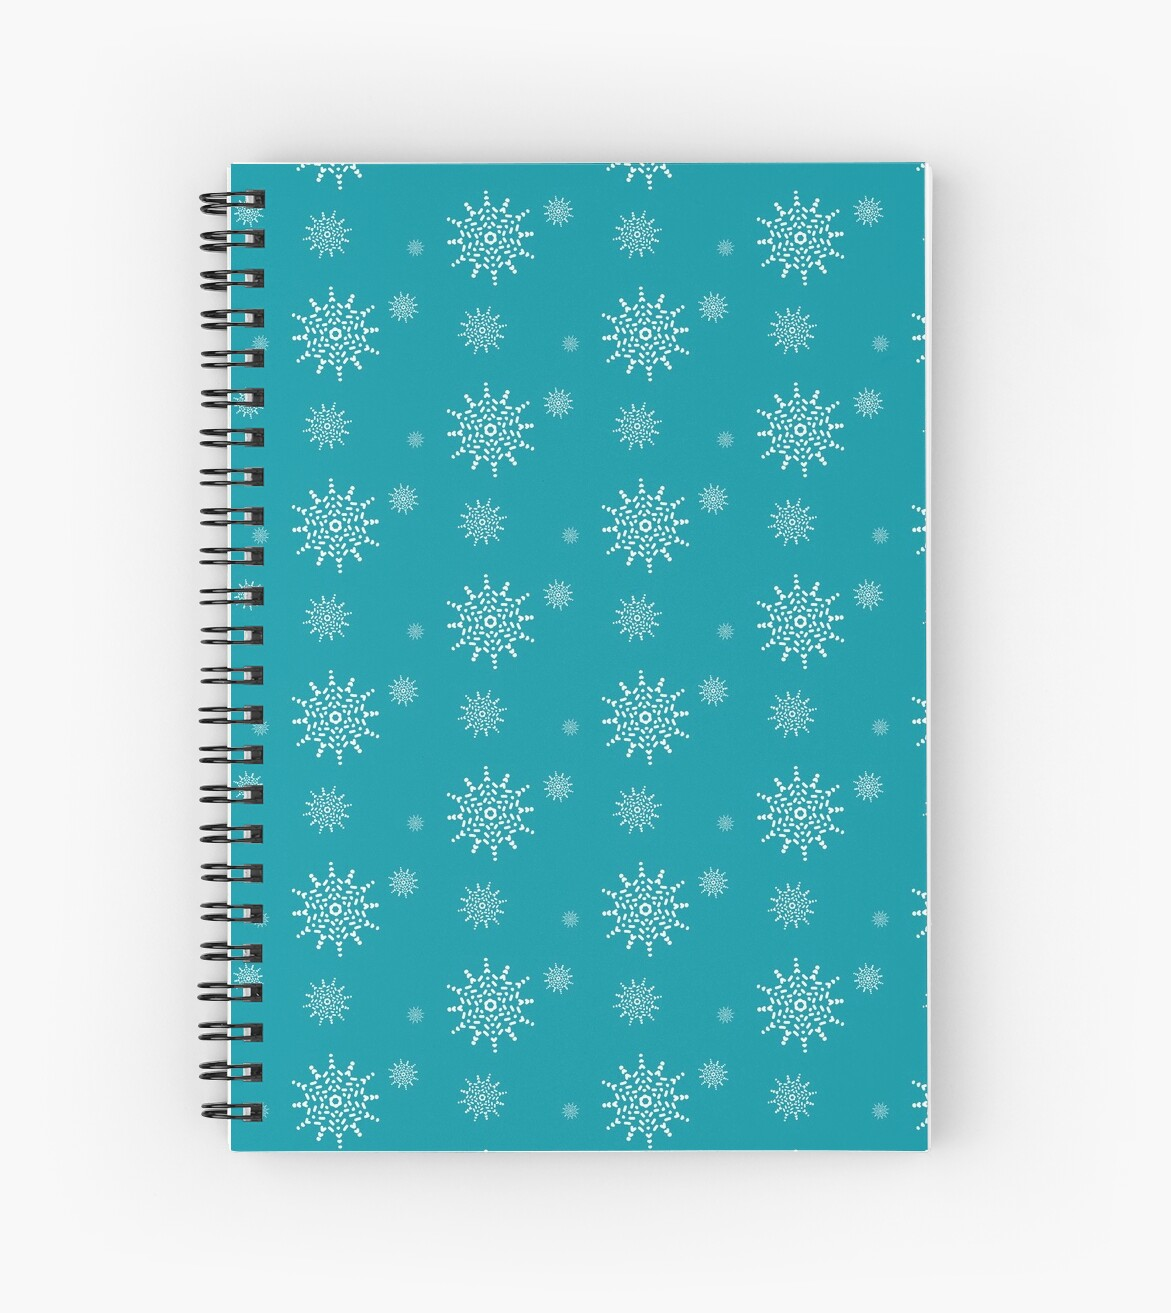 White Snowflakes on Turquoise by artkecco